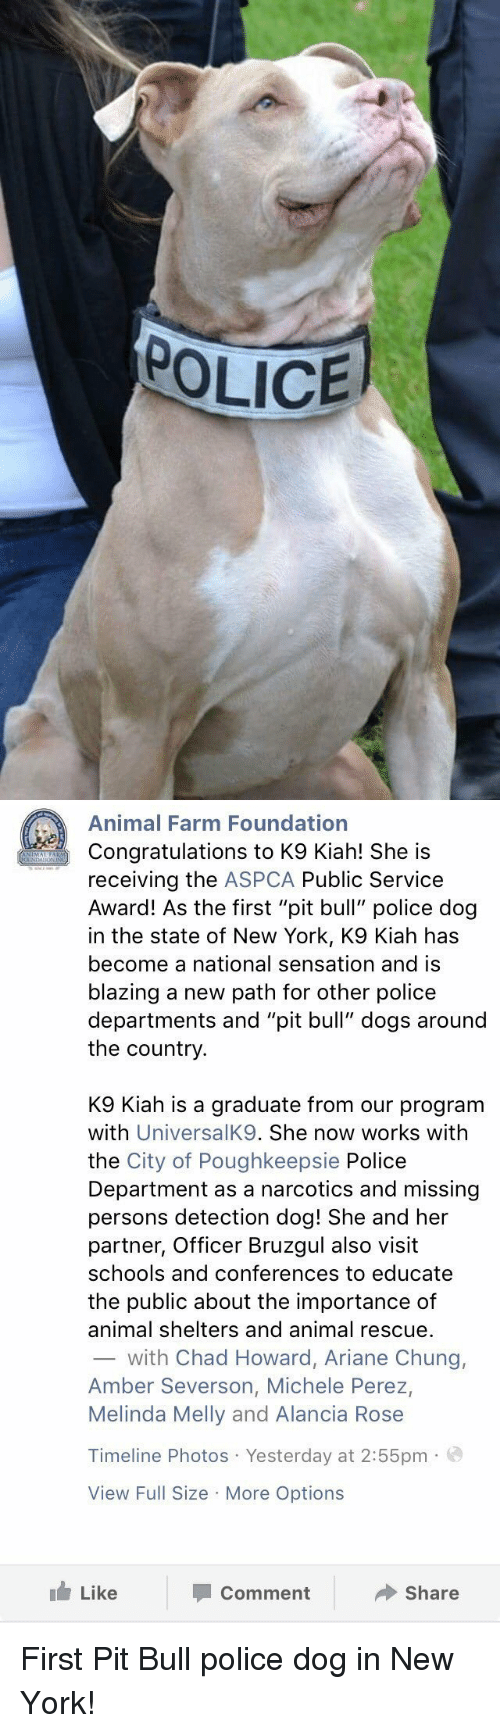 "Missing Person: POLICE   Animal Farm Foundation  Congratulations to K9 Kiah! She is  receiving the  ASPCA Public Service  Award! As the first ""pit bull"" police dog  in the state of New York, K9 Kiah has  become a national sensation and is  blazing a new path for other police  departments and ""pit bull"" dogs around  the country  K9 Kiah is a graduate from our program  with  UniversalK9. She now works with  the City of Poughkeepsie Police  Department as a narcotics and missing  persons detection dog! She and her  partner, Officer Bruzgul also visit  schools and conferences to educate  the public about the importance of  animal shelters and animal rescue.  with Chad Howard, Ariane Chung,  Amber Severson, Michele Perez,  Melinda Melly and Alancia Rose  Timeline Photos Yesterday at 2:55pm  a  View Full Size More Options  Like  Share  Comment First Pit Bull police dog in New York!"